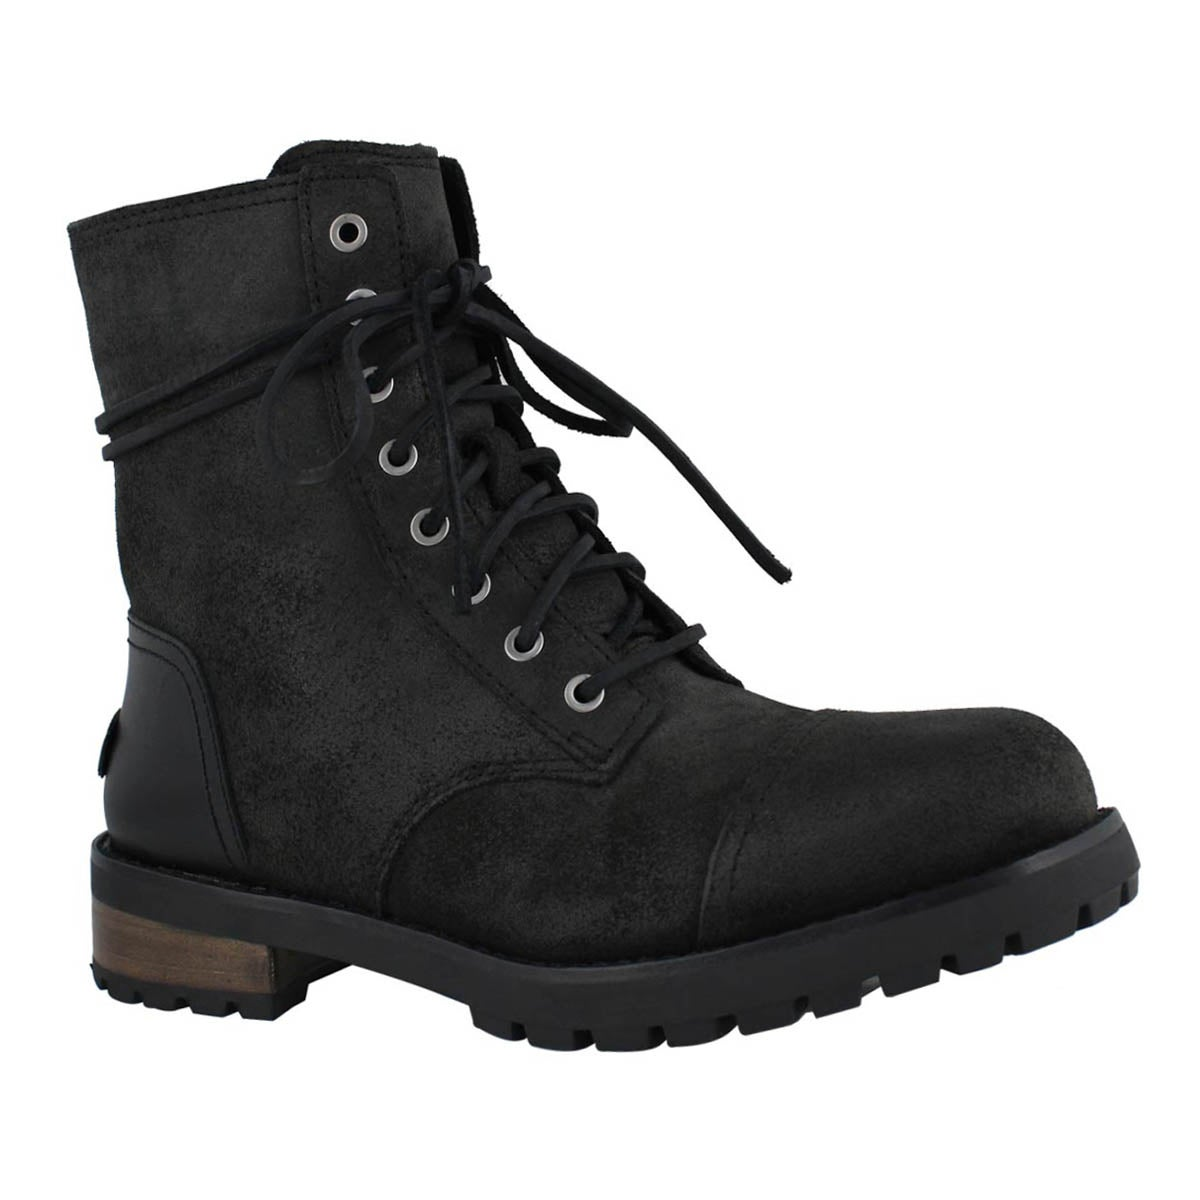 Lds Kilmer II black lace up combat boot